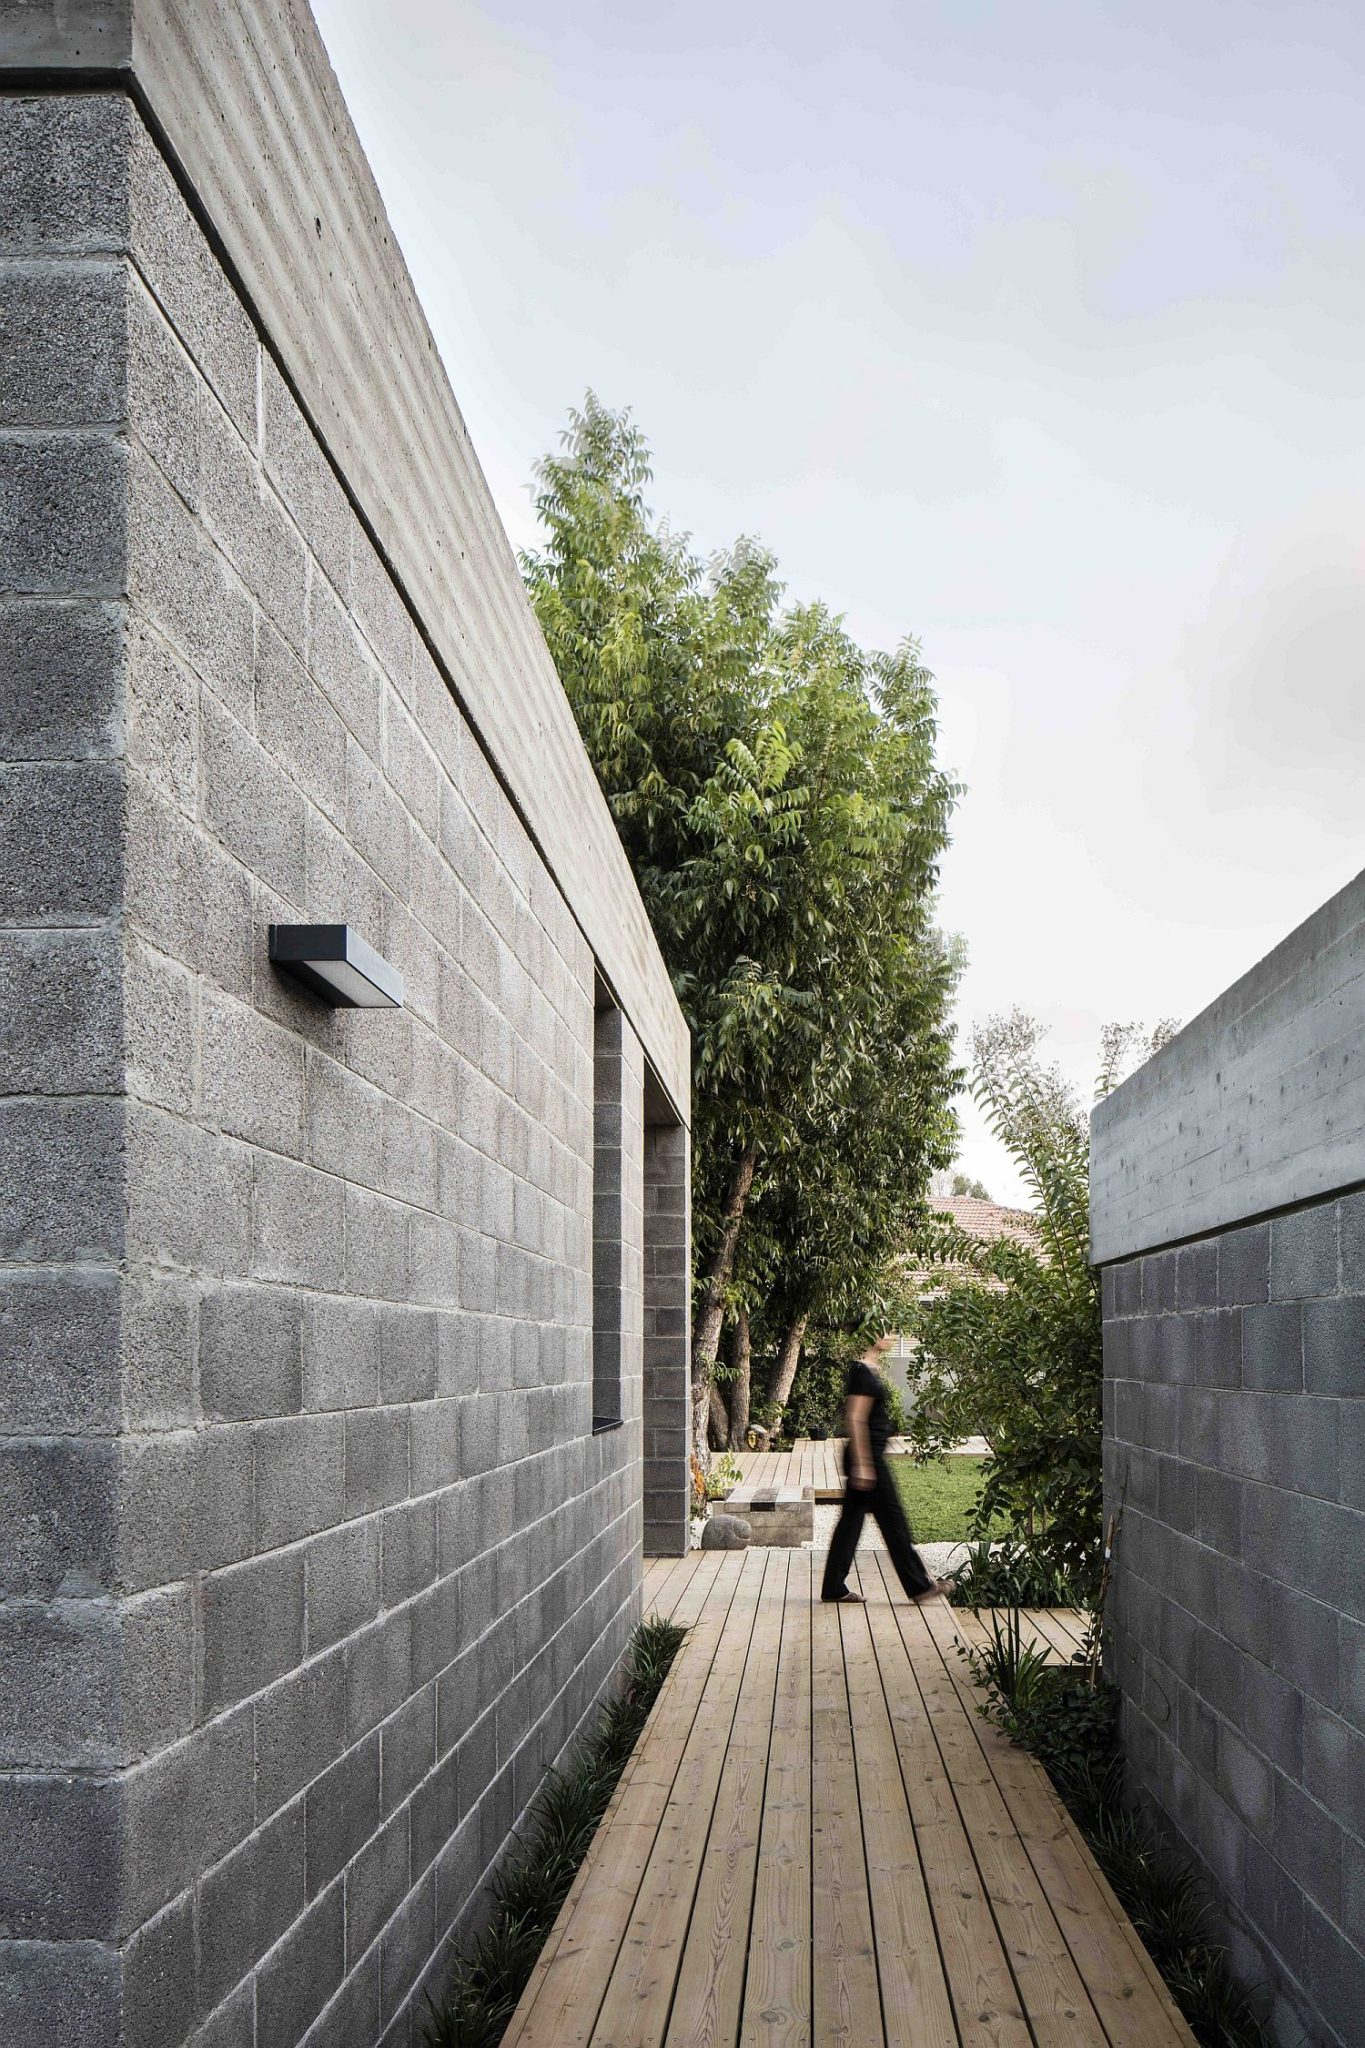 Wooden walkways and garden spaces surround the family house